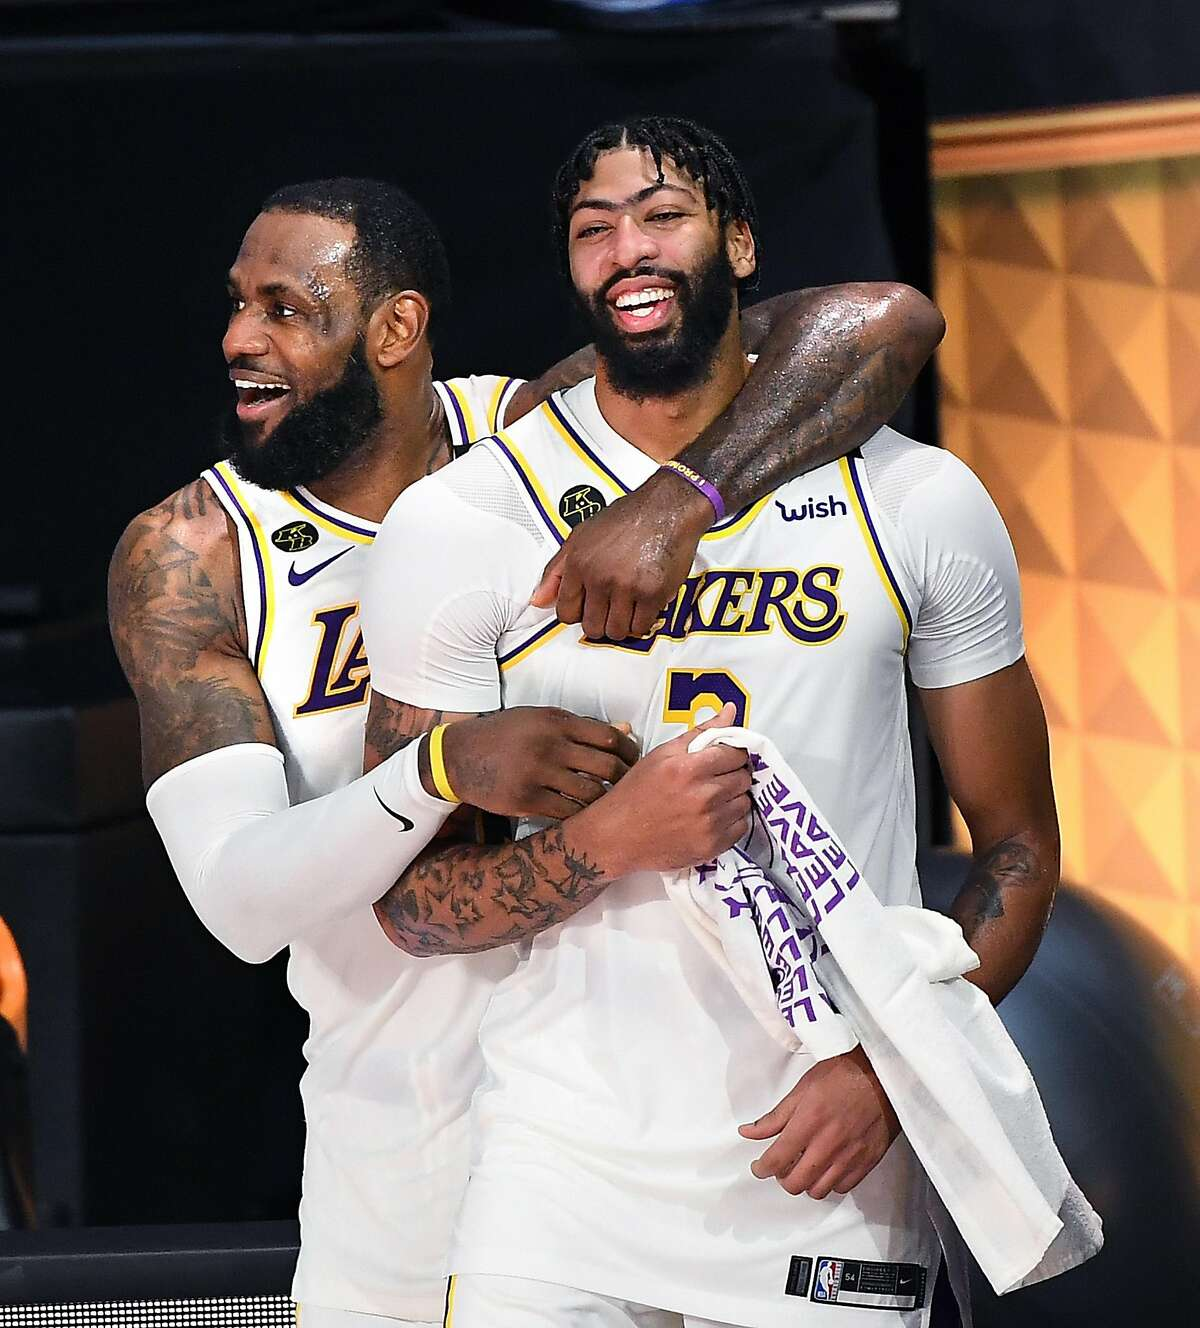 LeBron James (left) and Anthony Davis celebrate the Lakers' championship win over the Heat in October.